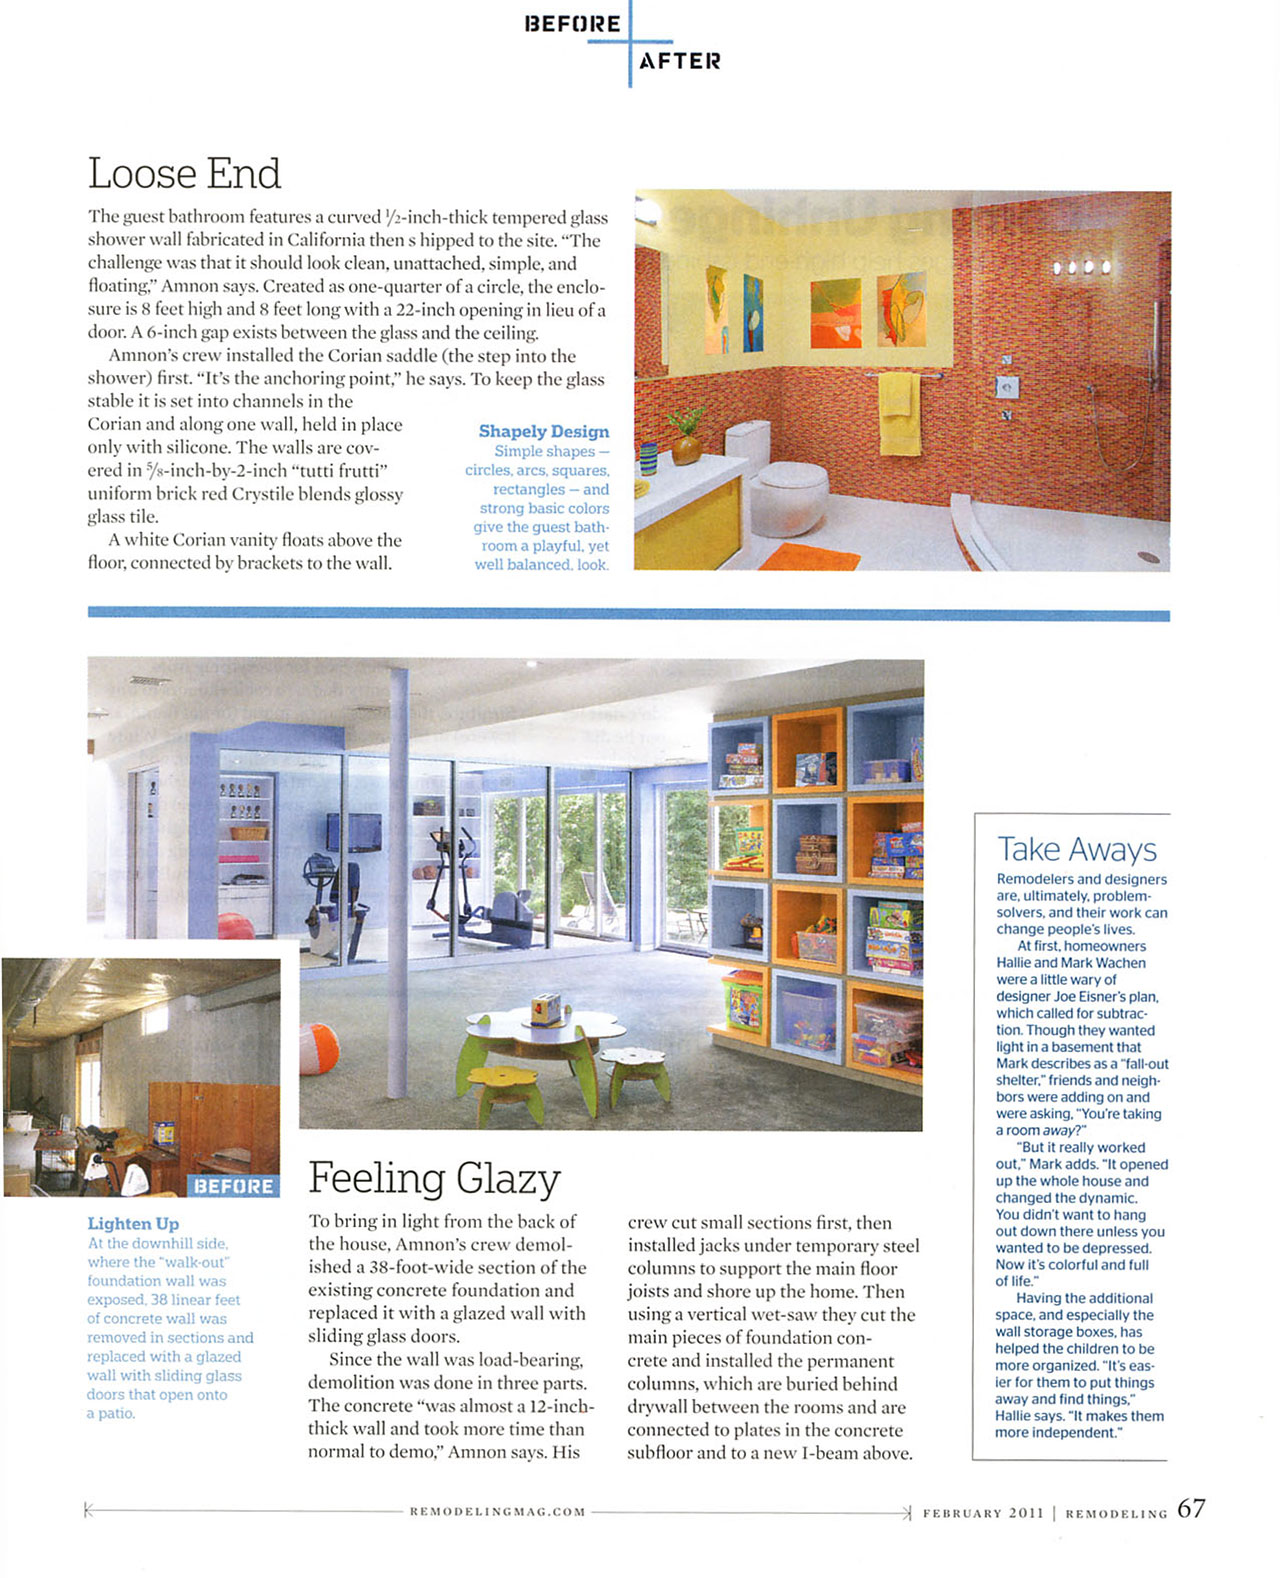 04_News_Out-of-the-Darkness-RemodelingMag2011-05_web_w1280